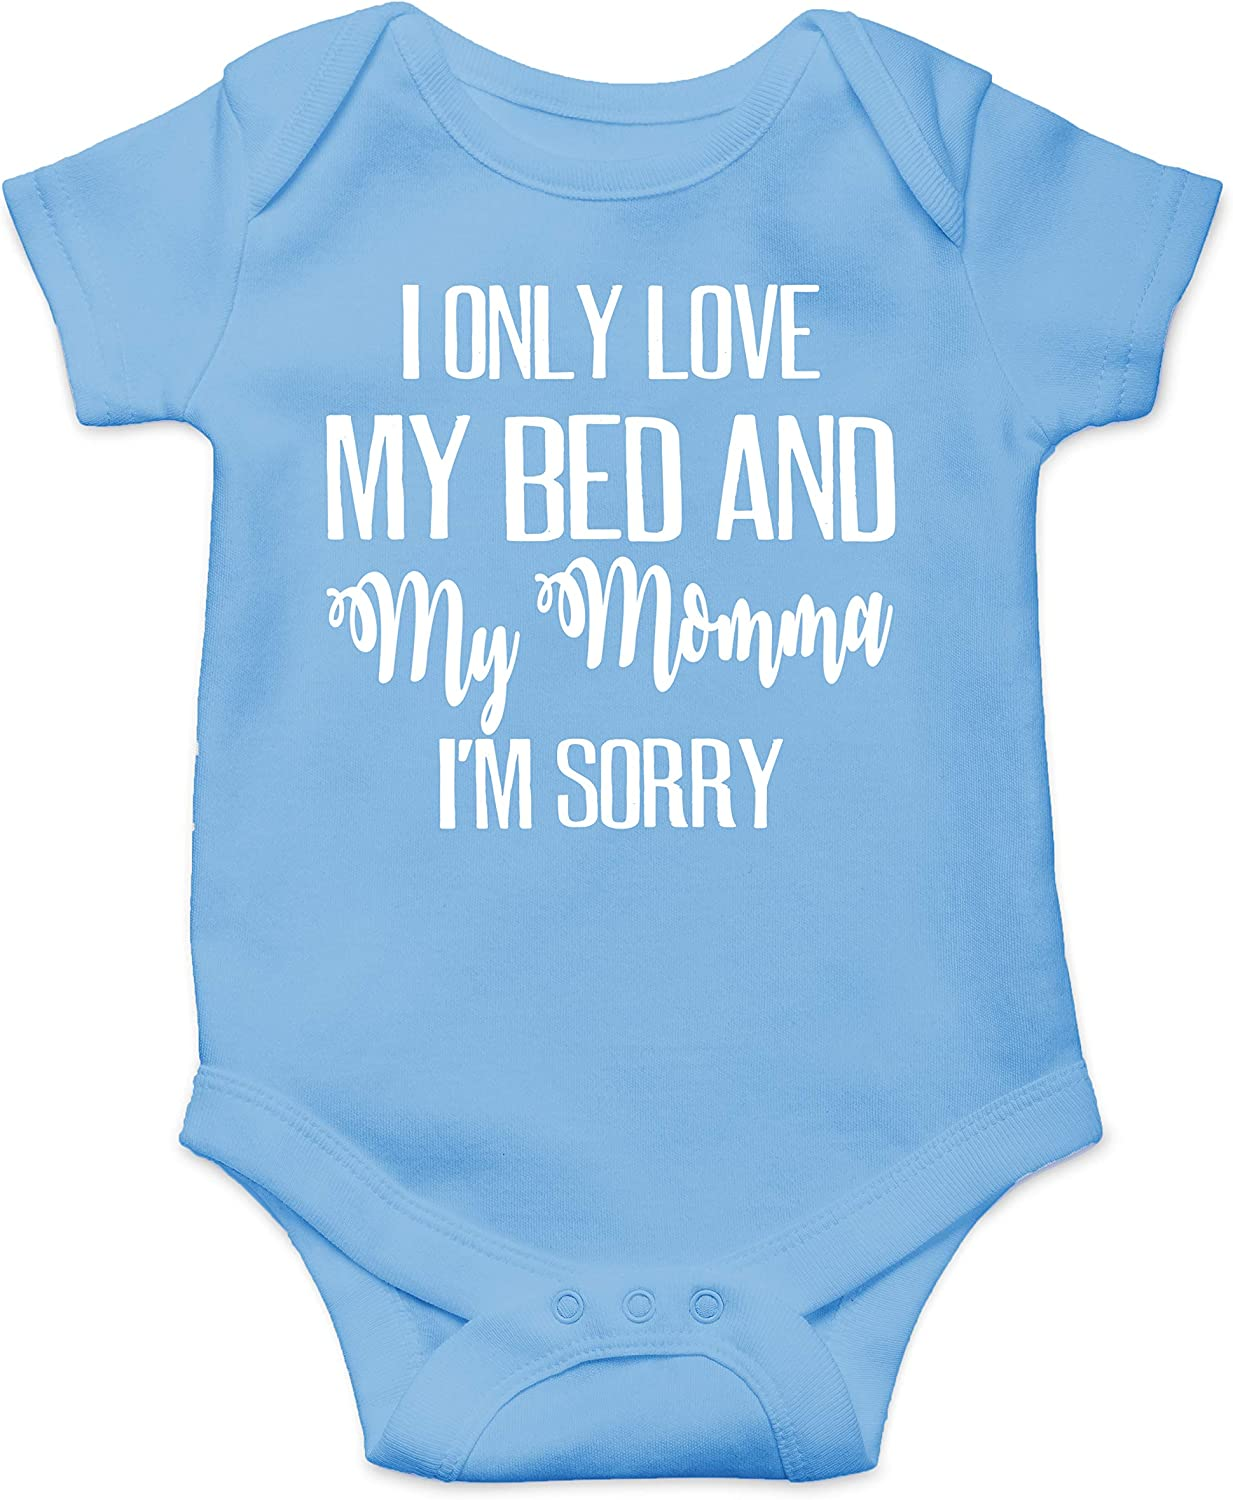 I Only Love My Bed and My Momma I'm Sorry - Funny Cute Infant Creeper, One-Piece Baby Bodysuit